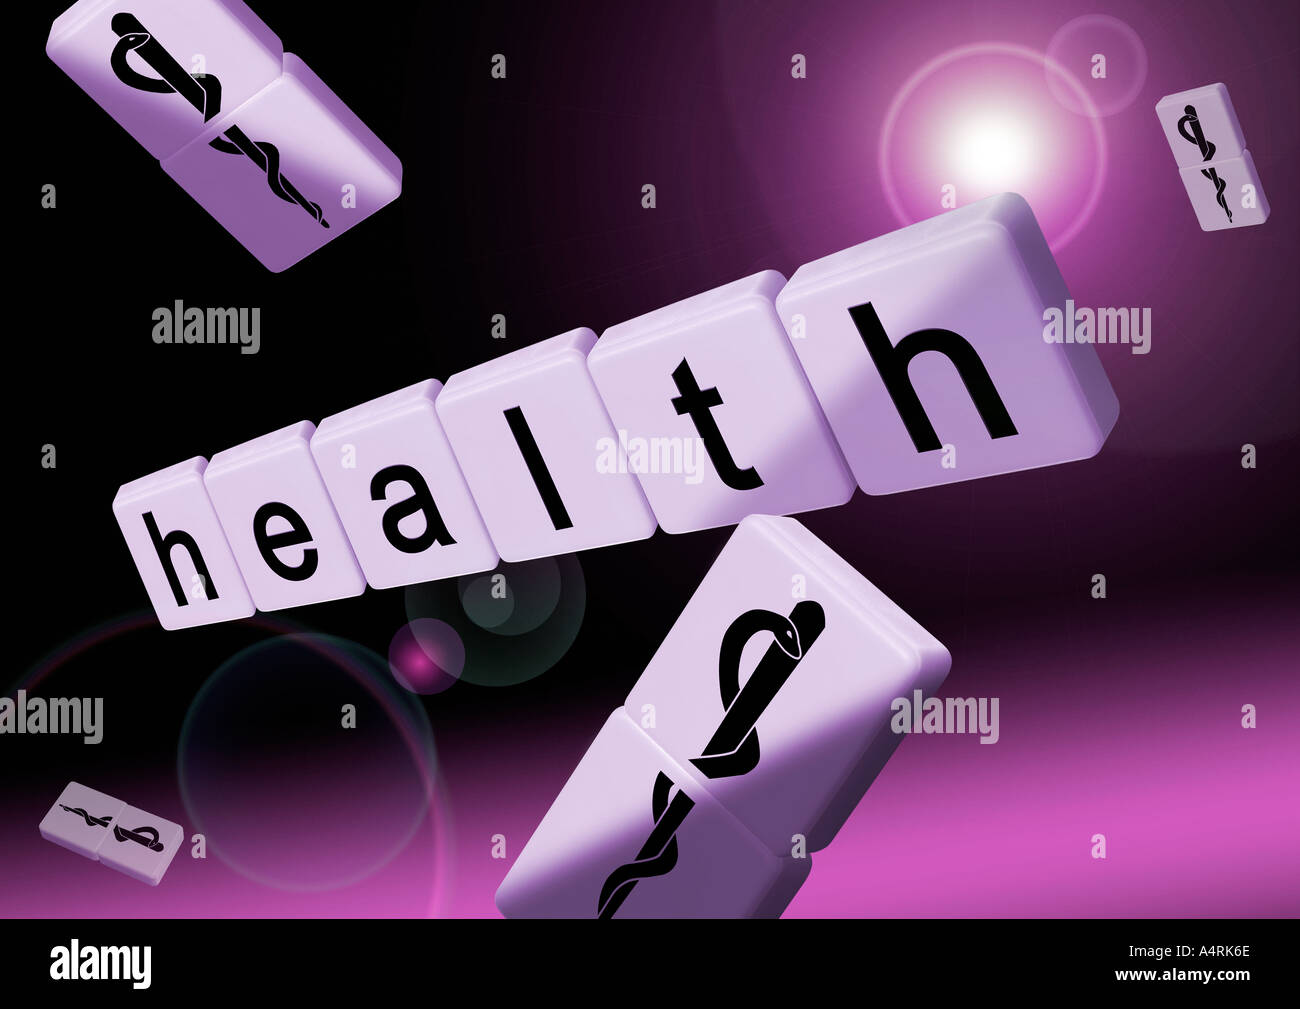 Schriftzug health mit Aesculapstab health in letters and aesculap staff with snake Stock Photo